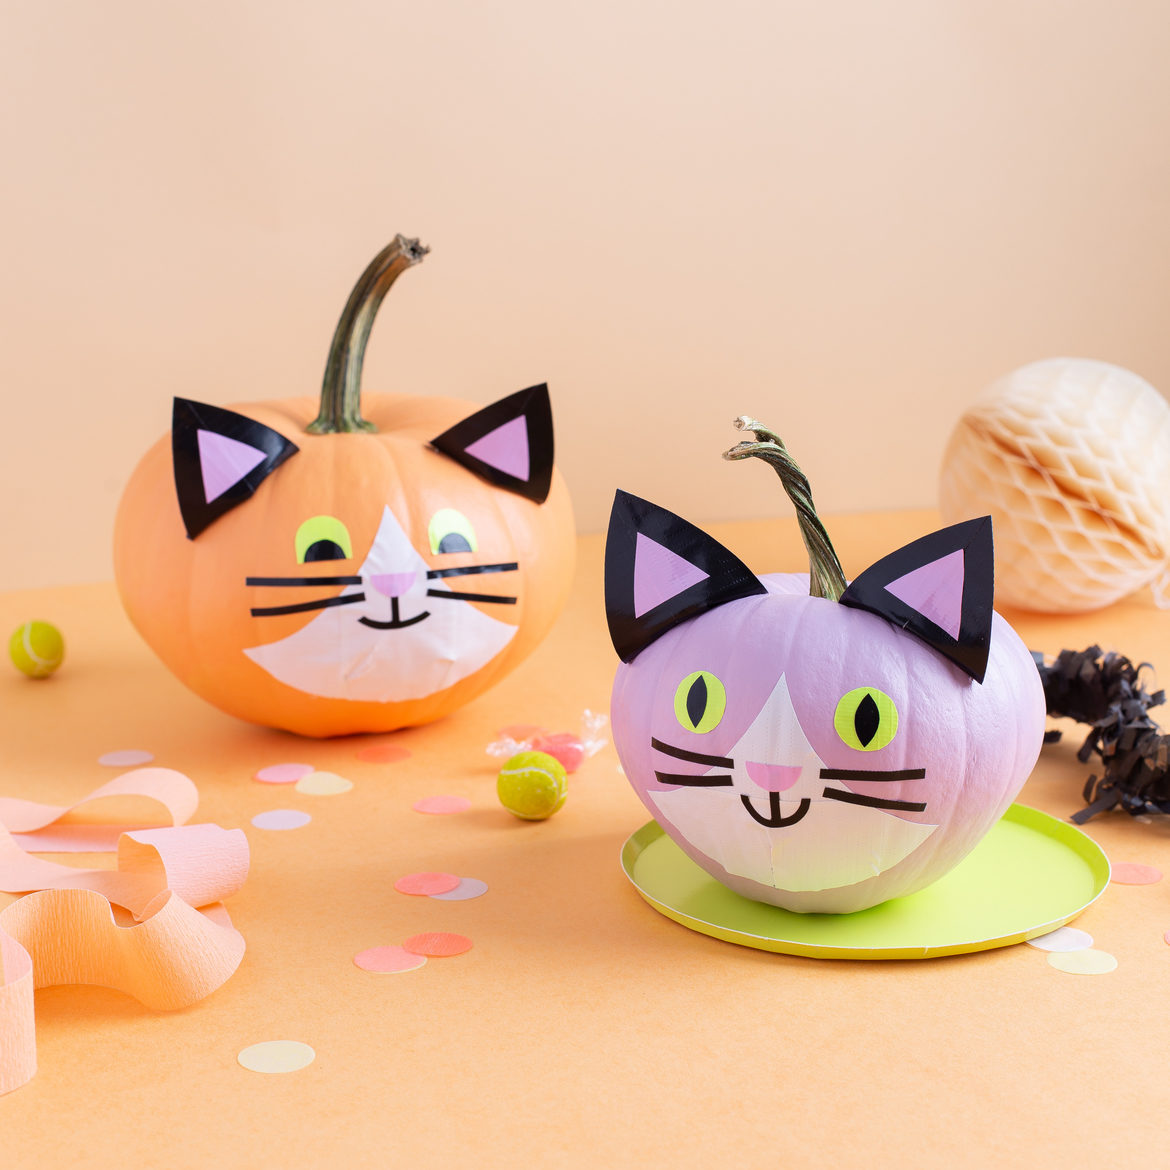 Colored cat pumpkins decorated with duct tape.